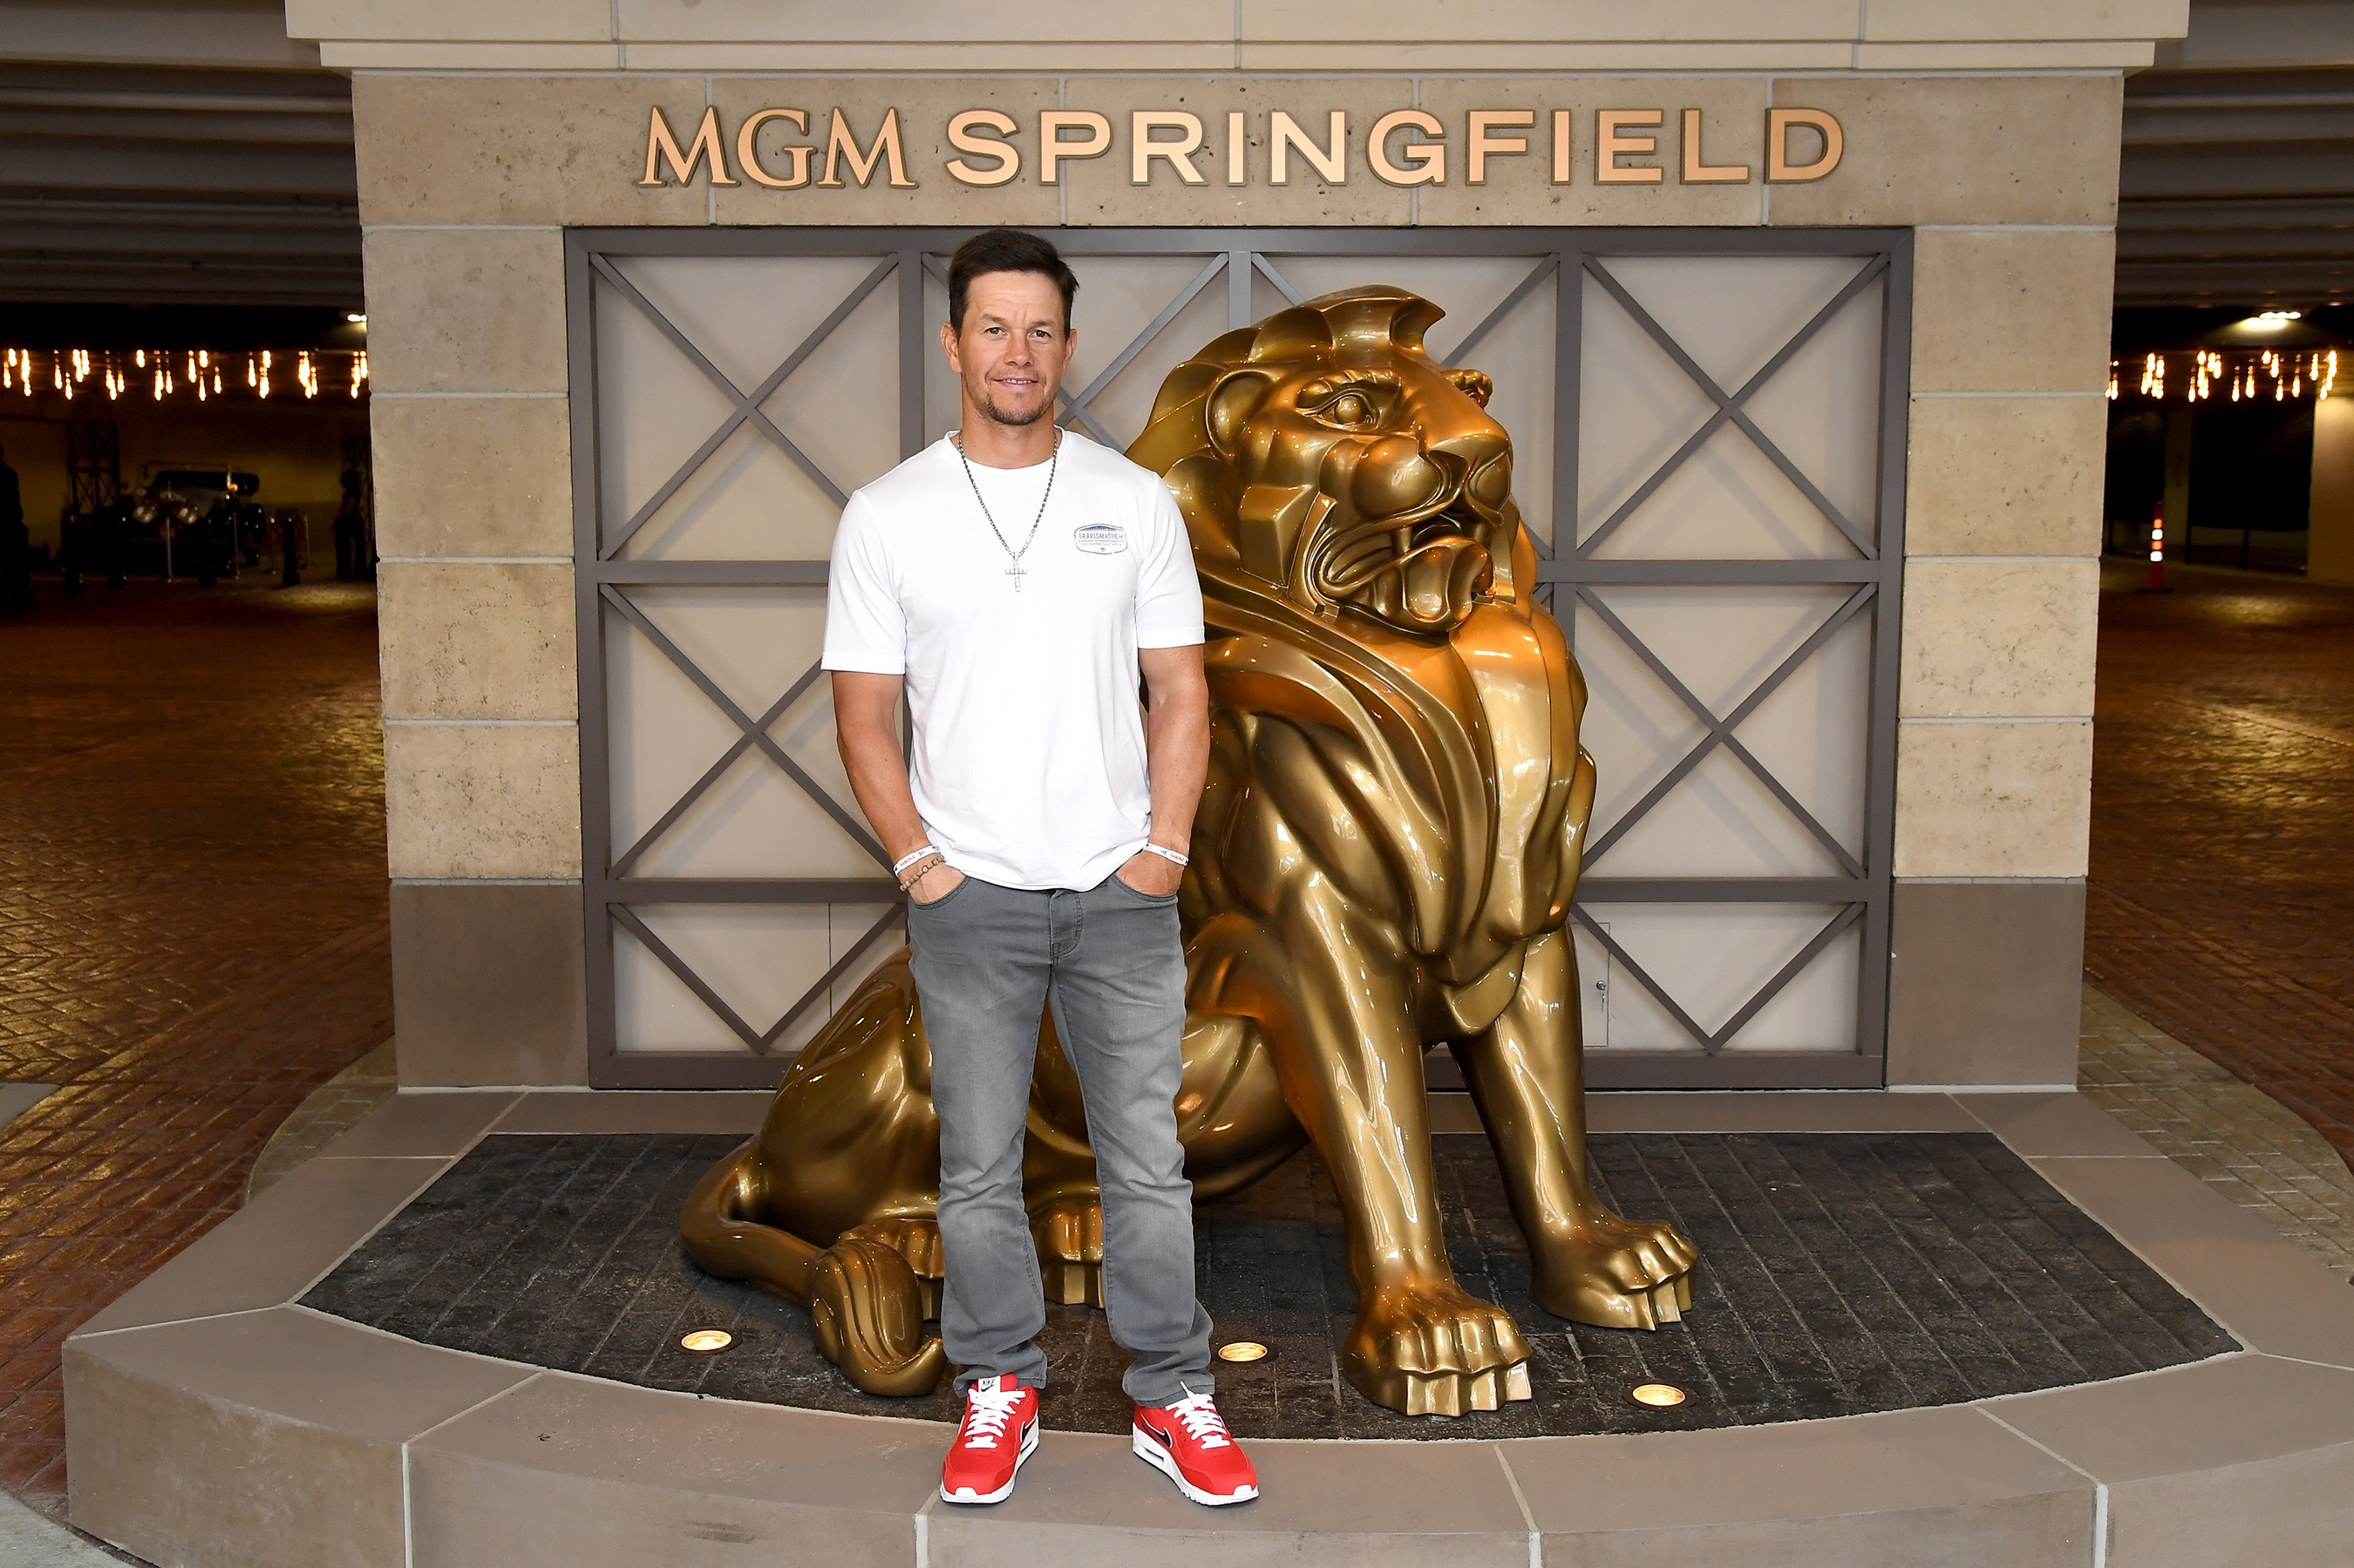 Mark Wahlberg announced that Wahlburgers will open a new location at MGM Springfield in late 2019.